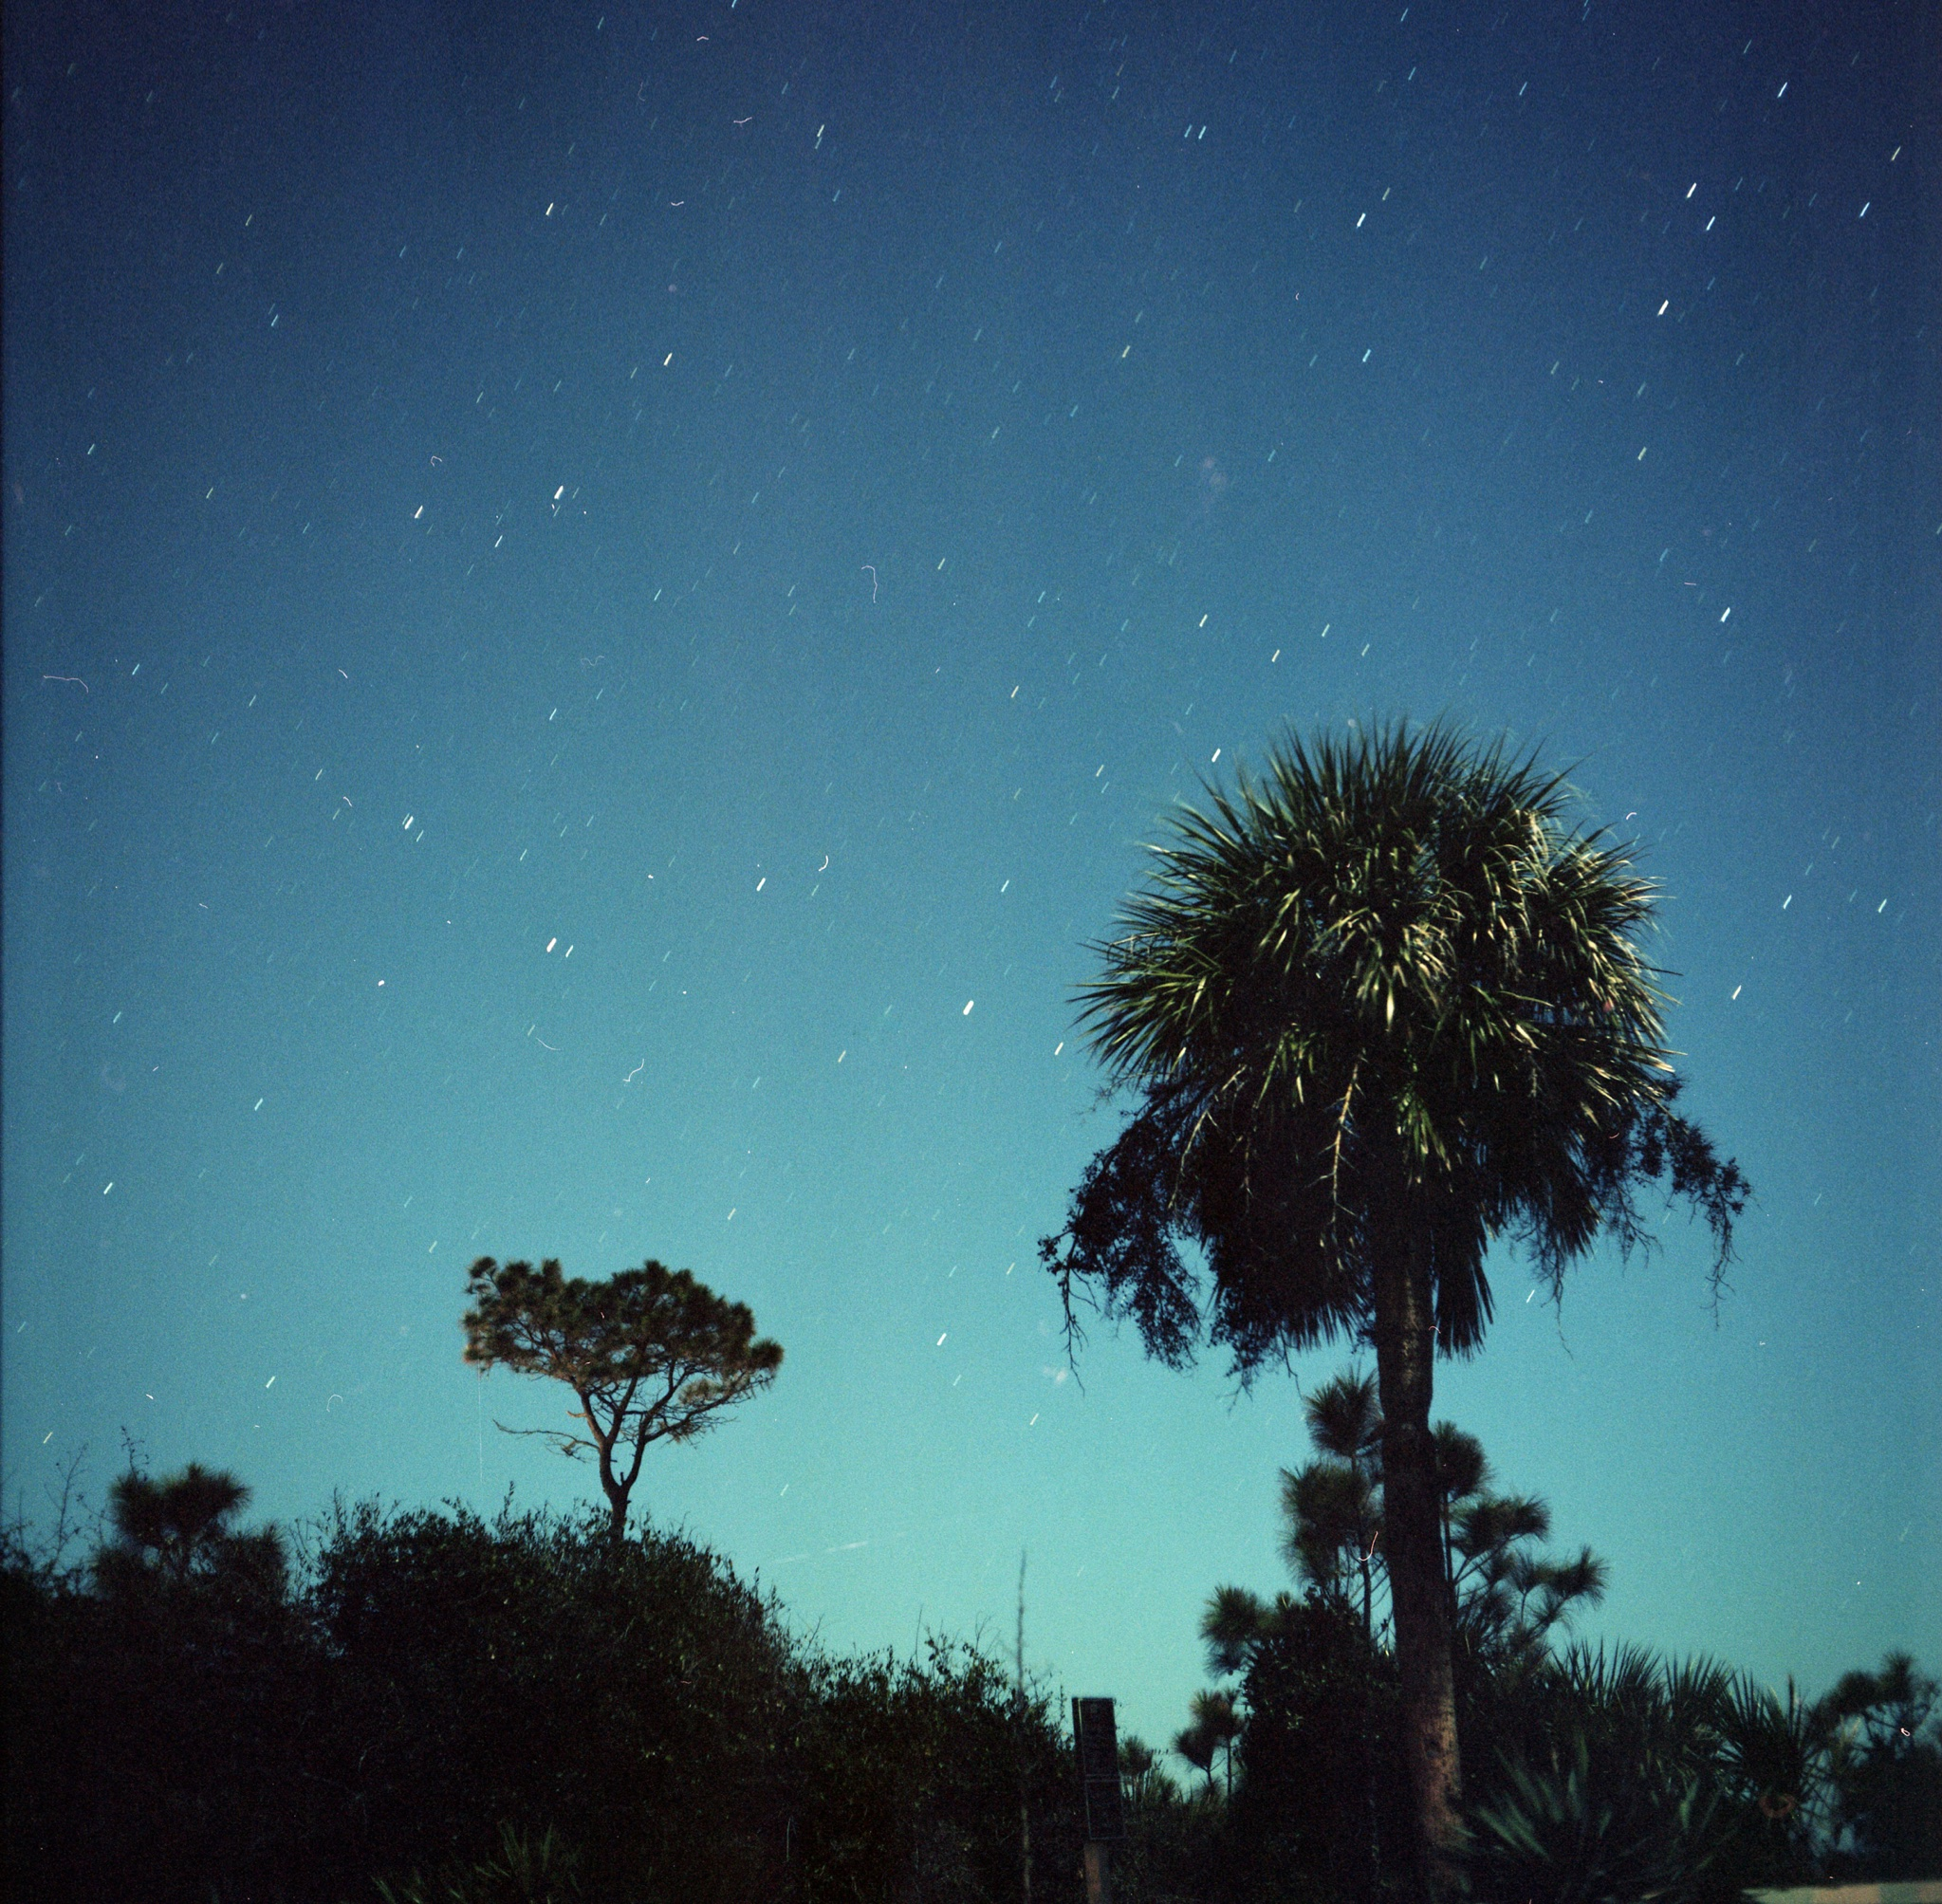 Shot on a medium format film camera, the motion of the stars in the winter night sky above Hilton Head Island in South Carolina begins to show during late December 2017.